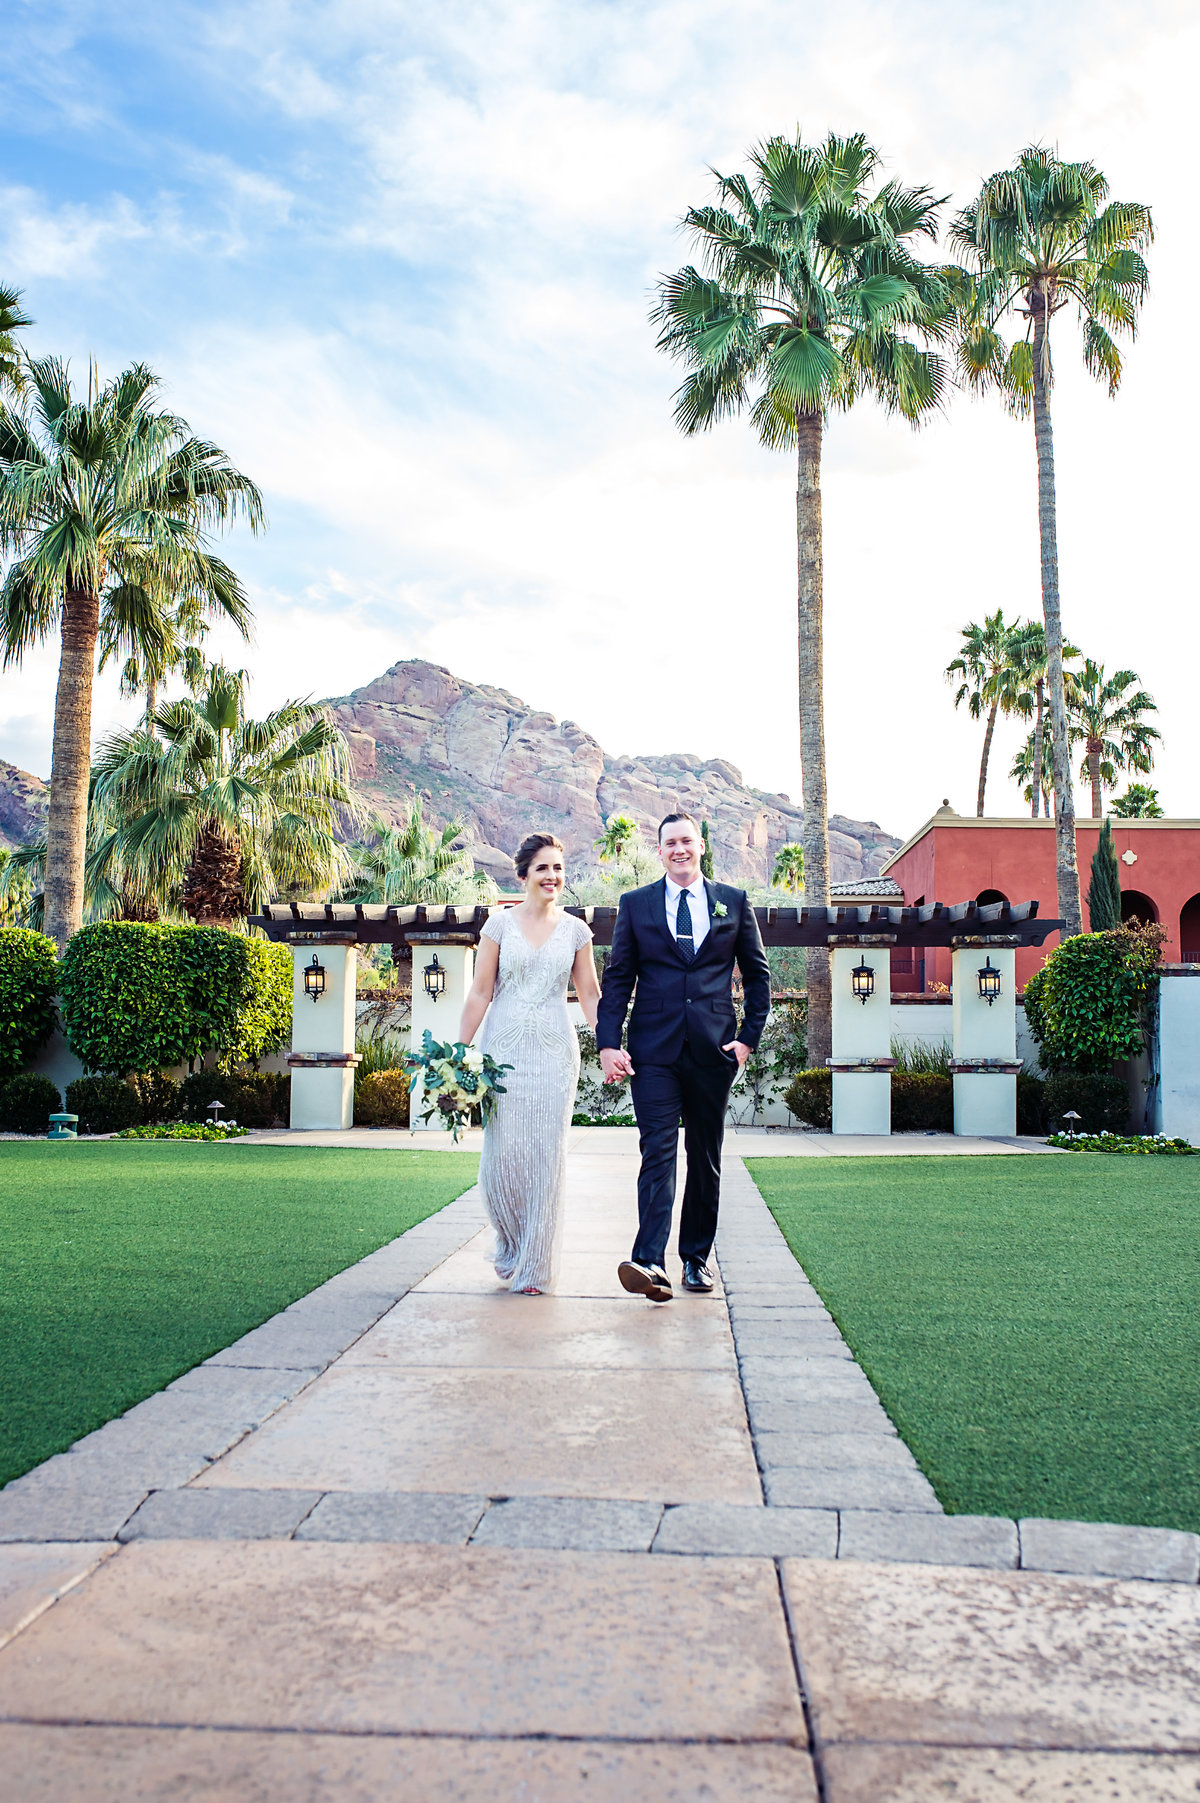 Small wedding at the Omni Scottsdale Resort in Paradise Valley, Arizona